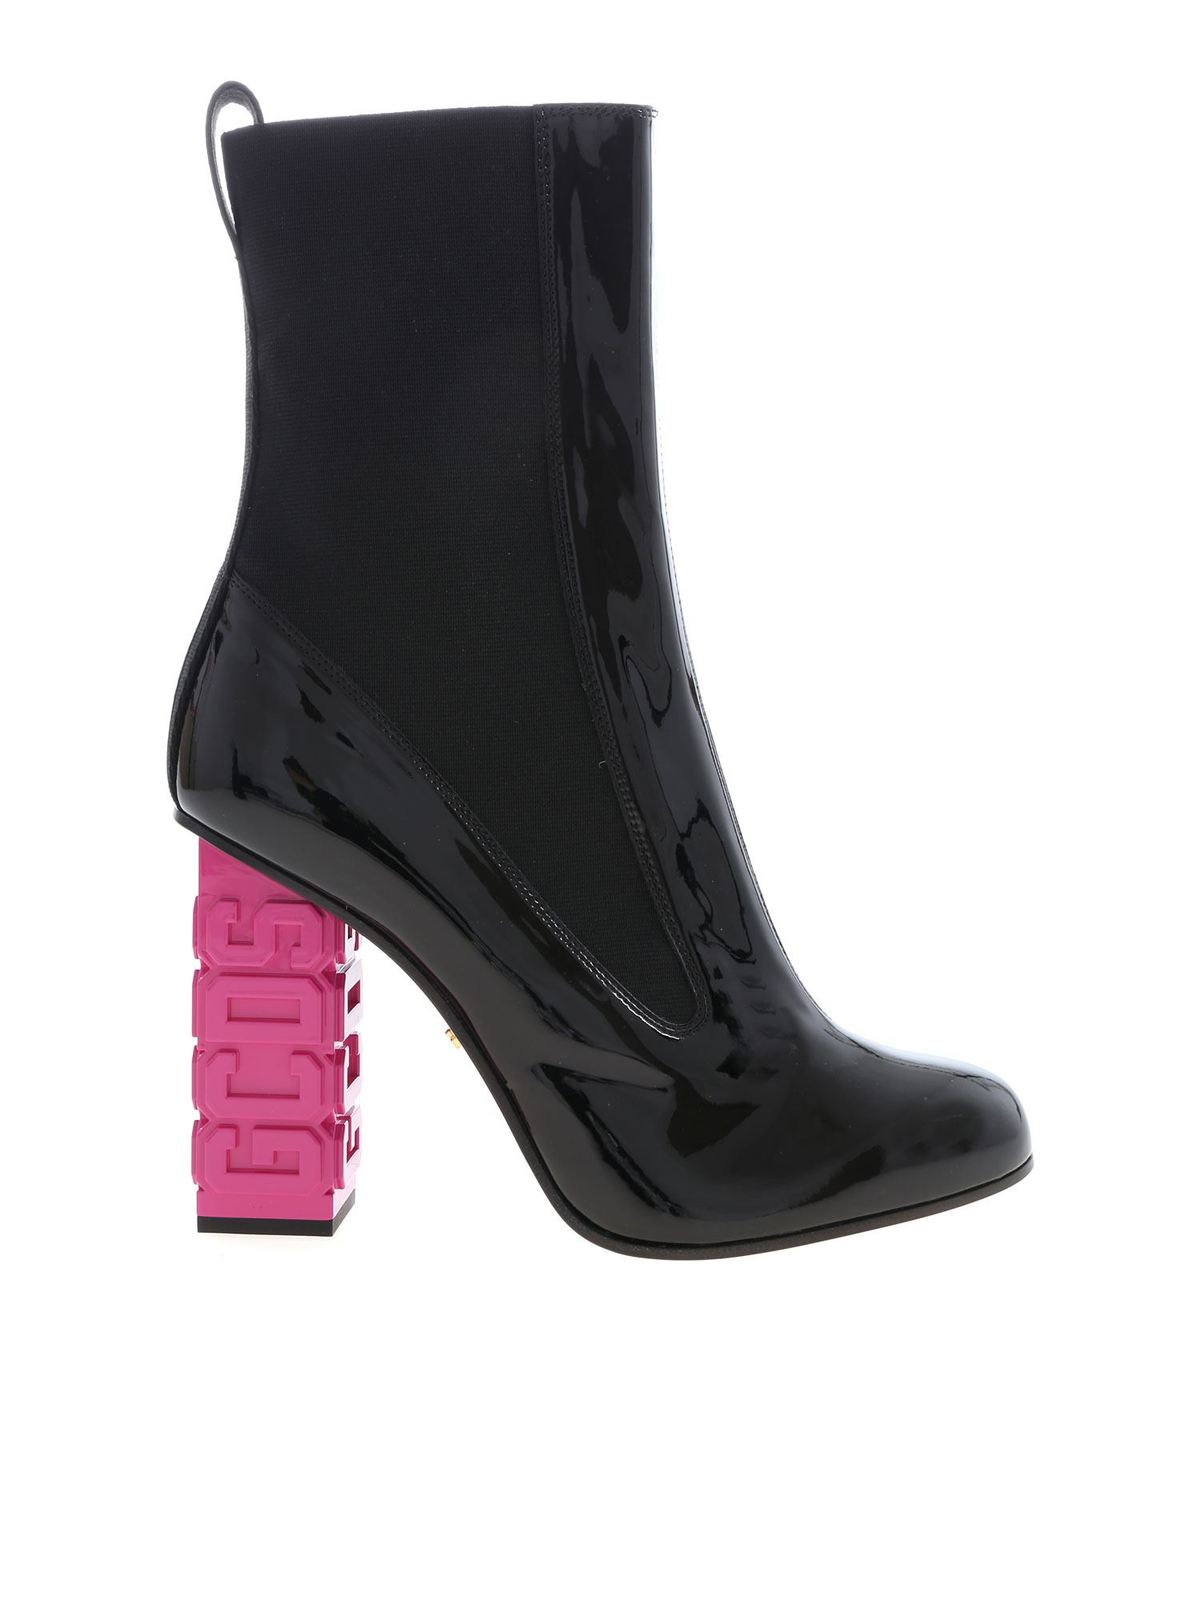 Gcds ANKLE BOOTS IN BLACK PATENT LEATHER